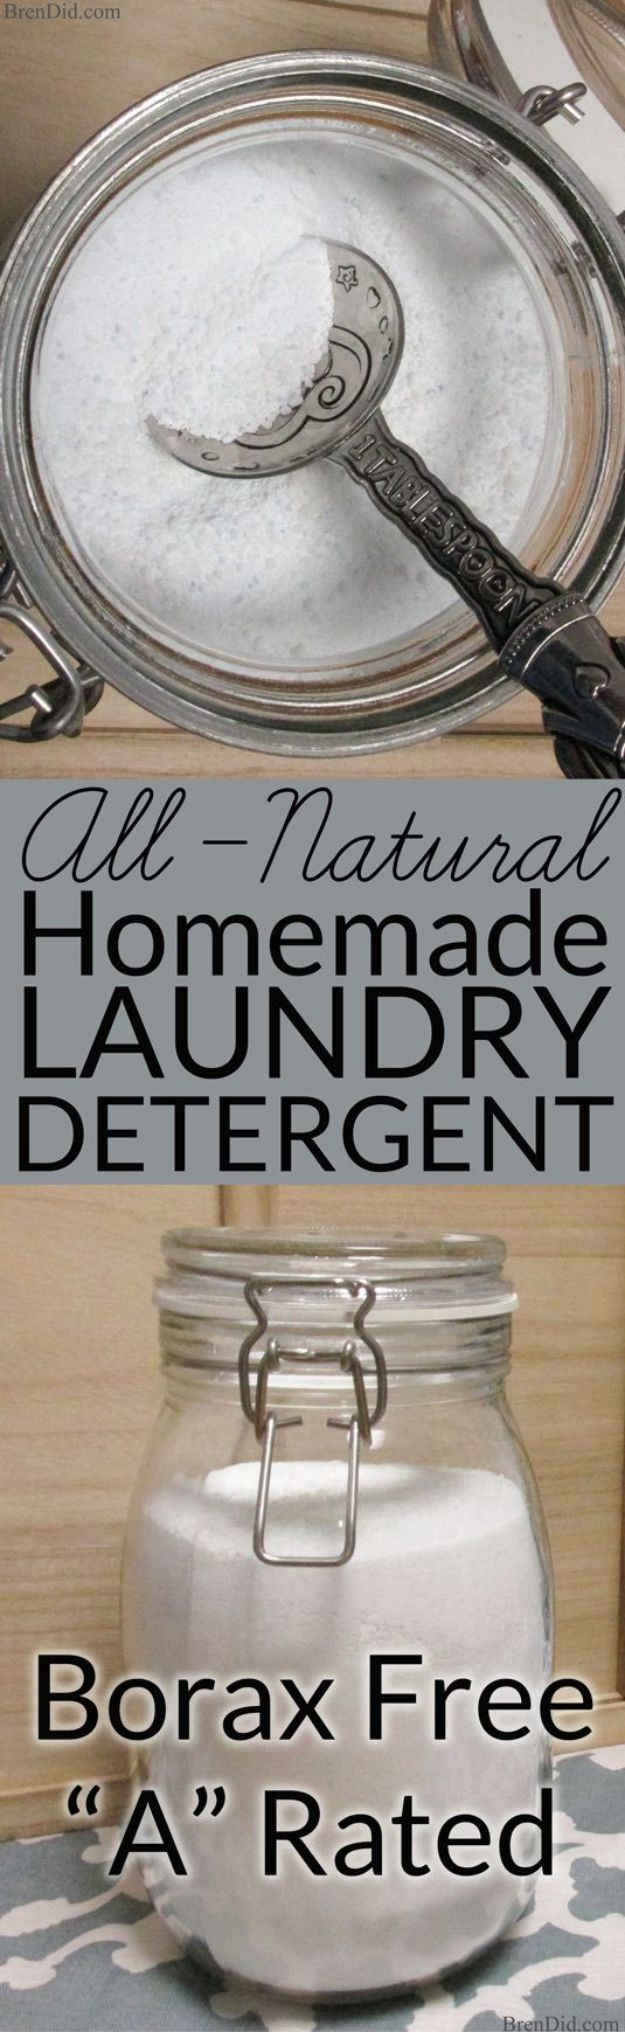 Laundry Detergent Recipes - Borax Free Natural Homemade Laundry Detergent - DIY Detergents and Cleaning Recipe Tutorials for Homemade Inexpensive Cleaners You Can Make At Home #recipes #laundry